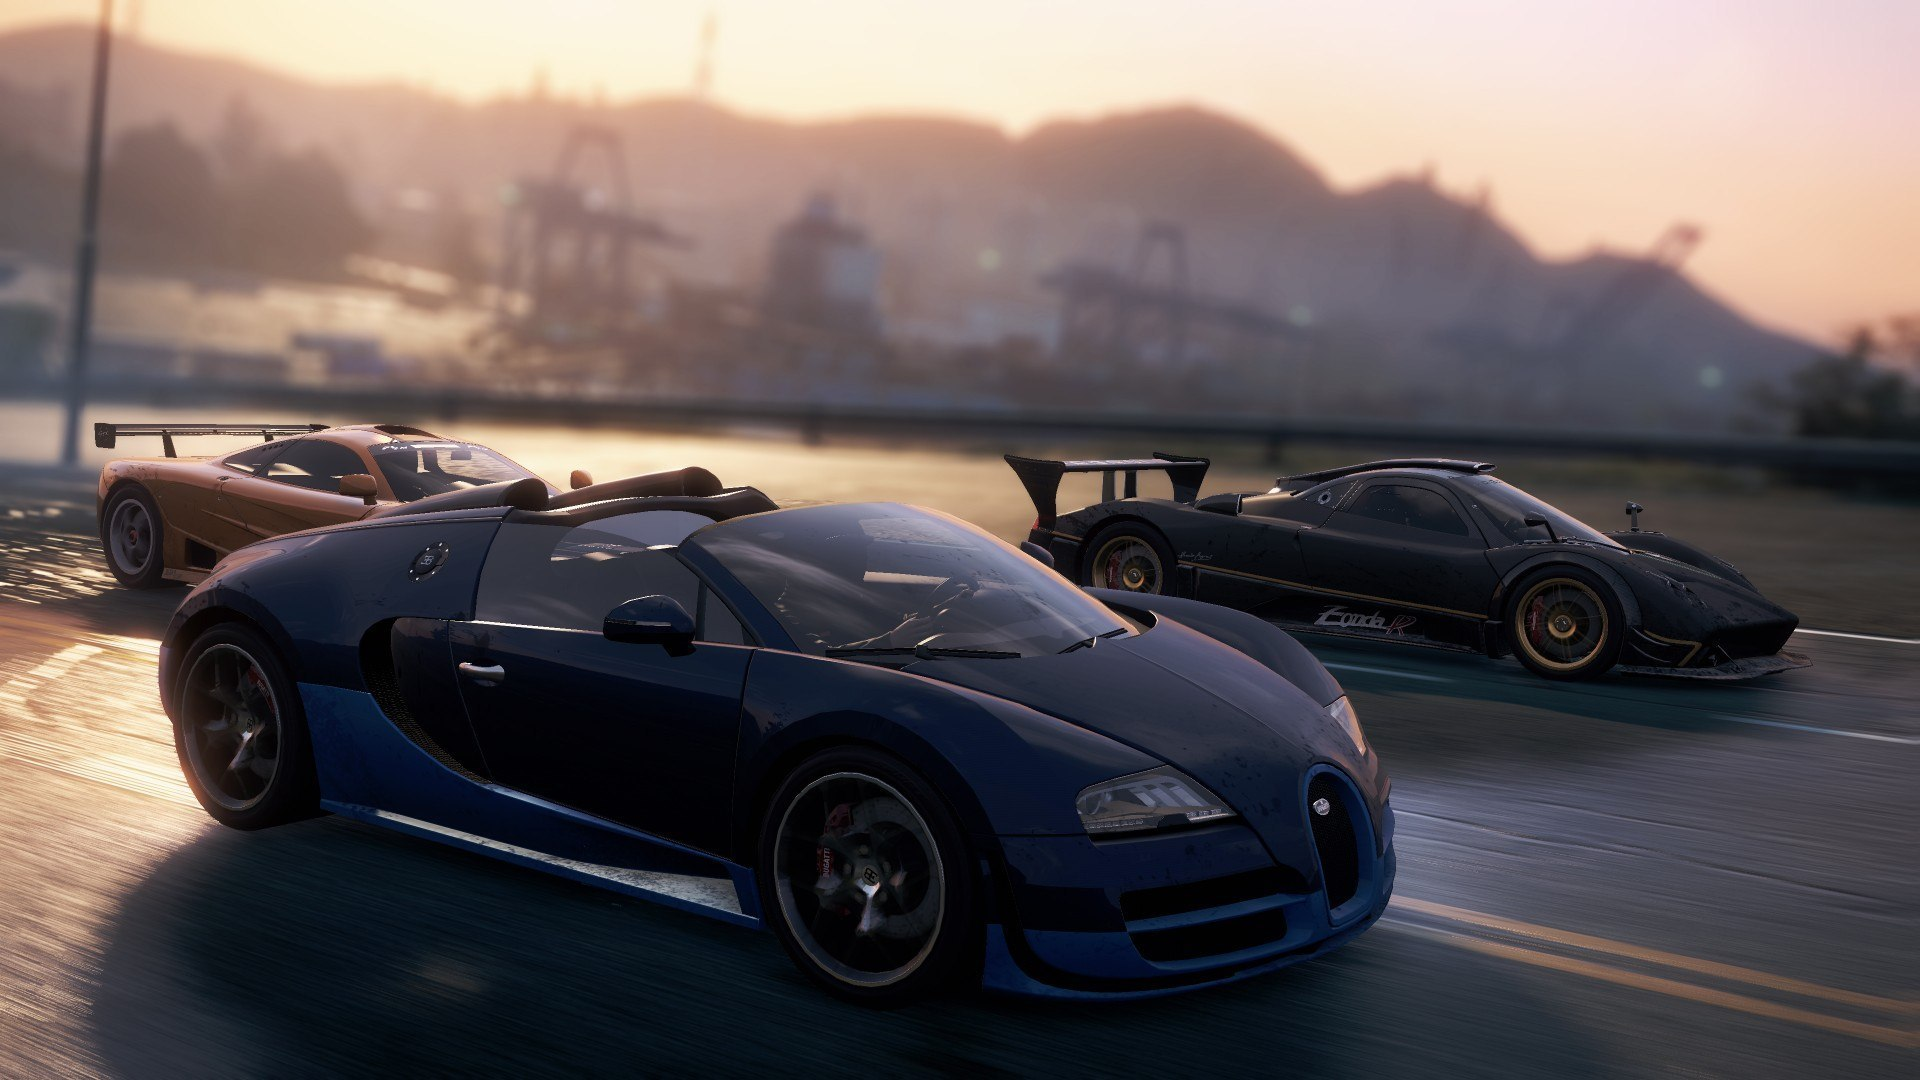 Car Chase Wallpaper Hd Supercar Need For Speed Most Wanted 2012 Veyron Grand